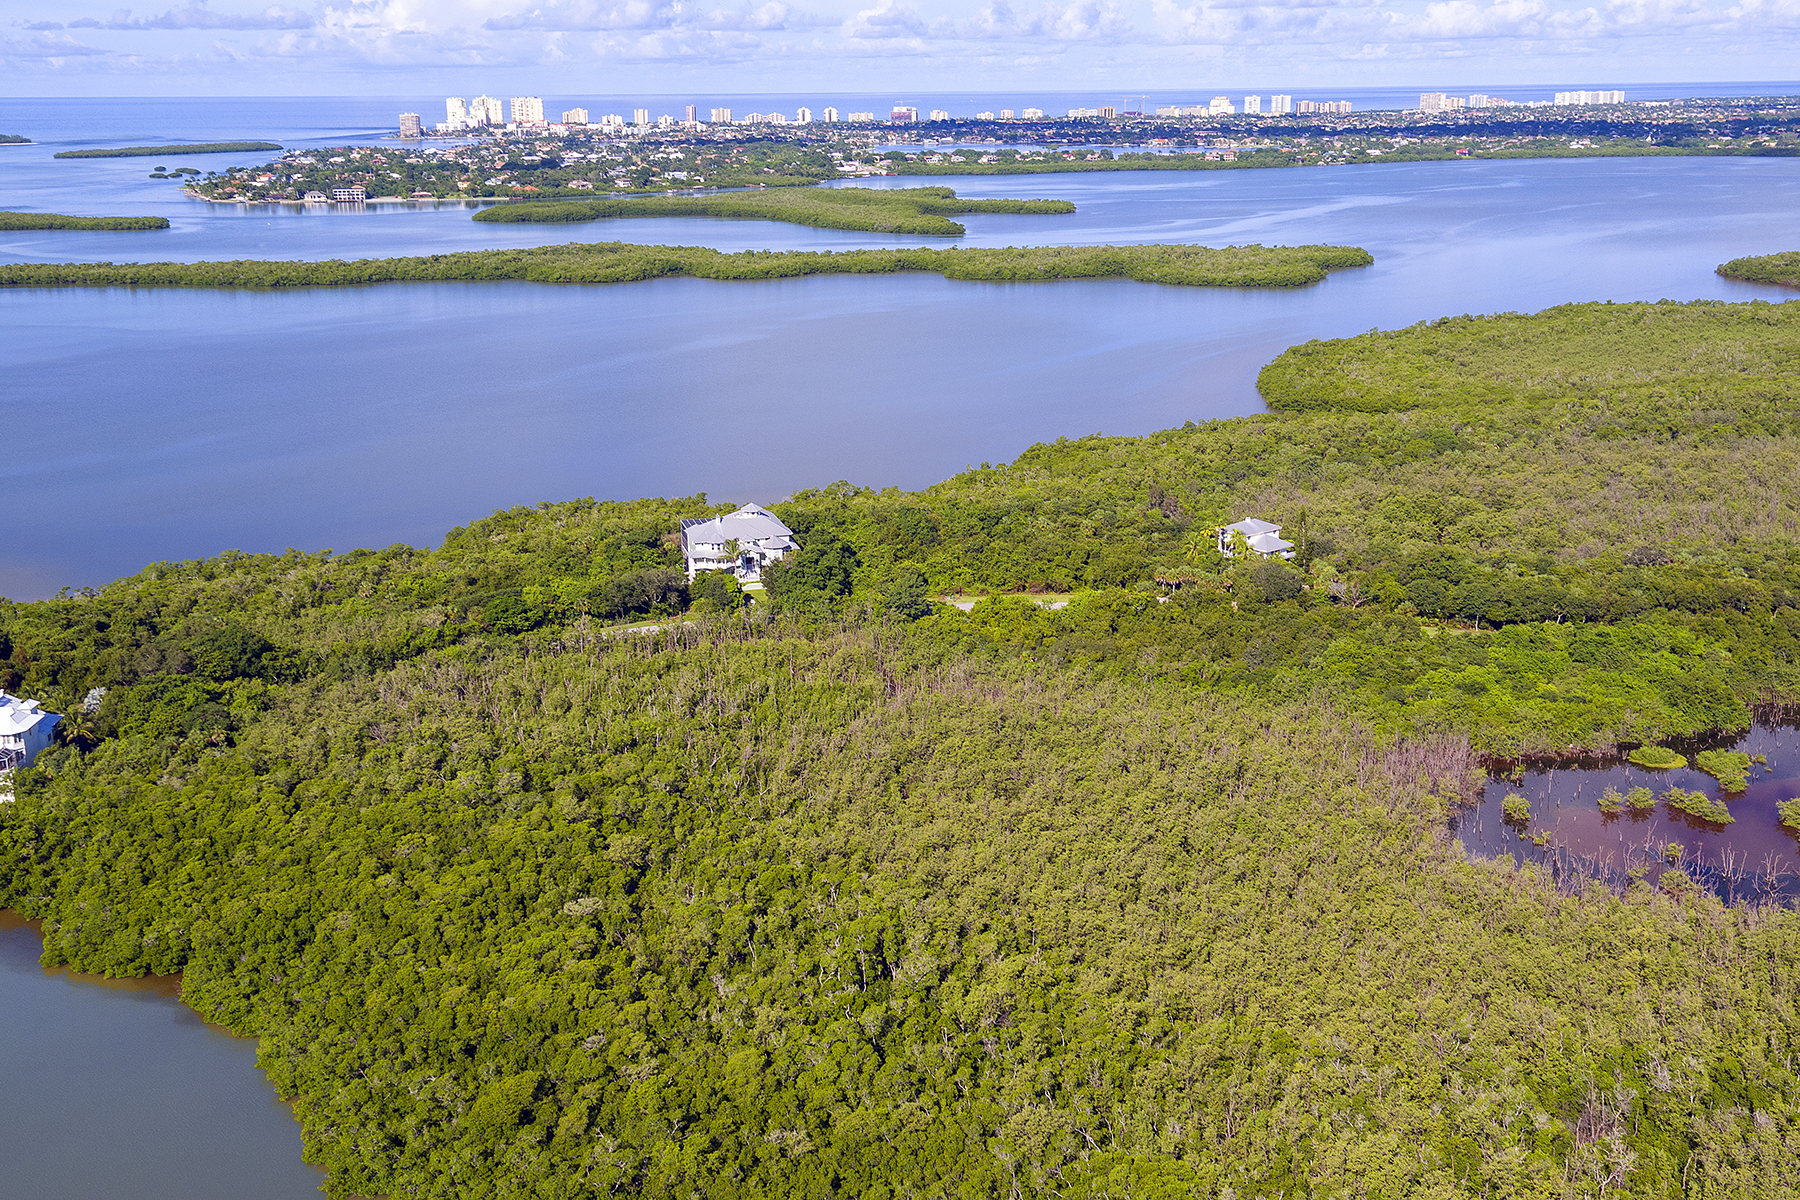 Land for Sale at MARCO ISLAND - KEY MARCO 828 Whiskey Creek Dr, Marco Island, Florida 34145 United States